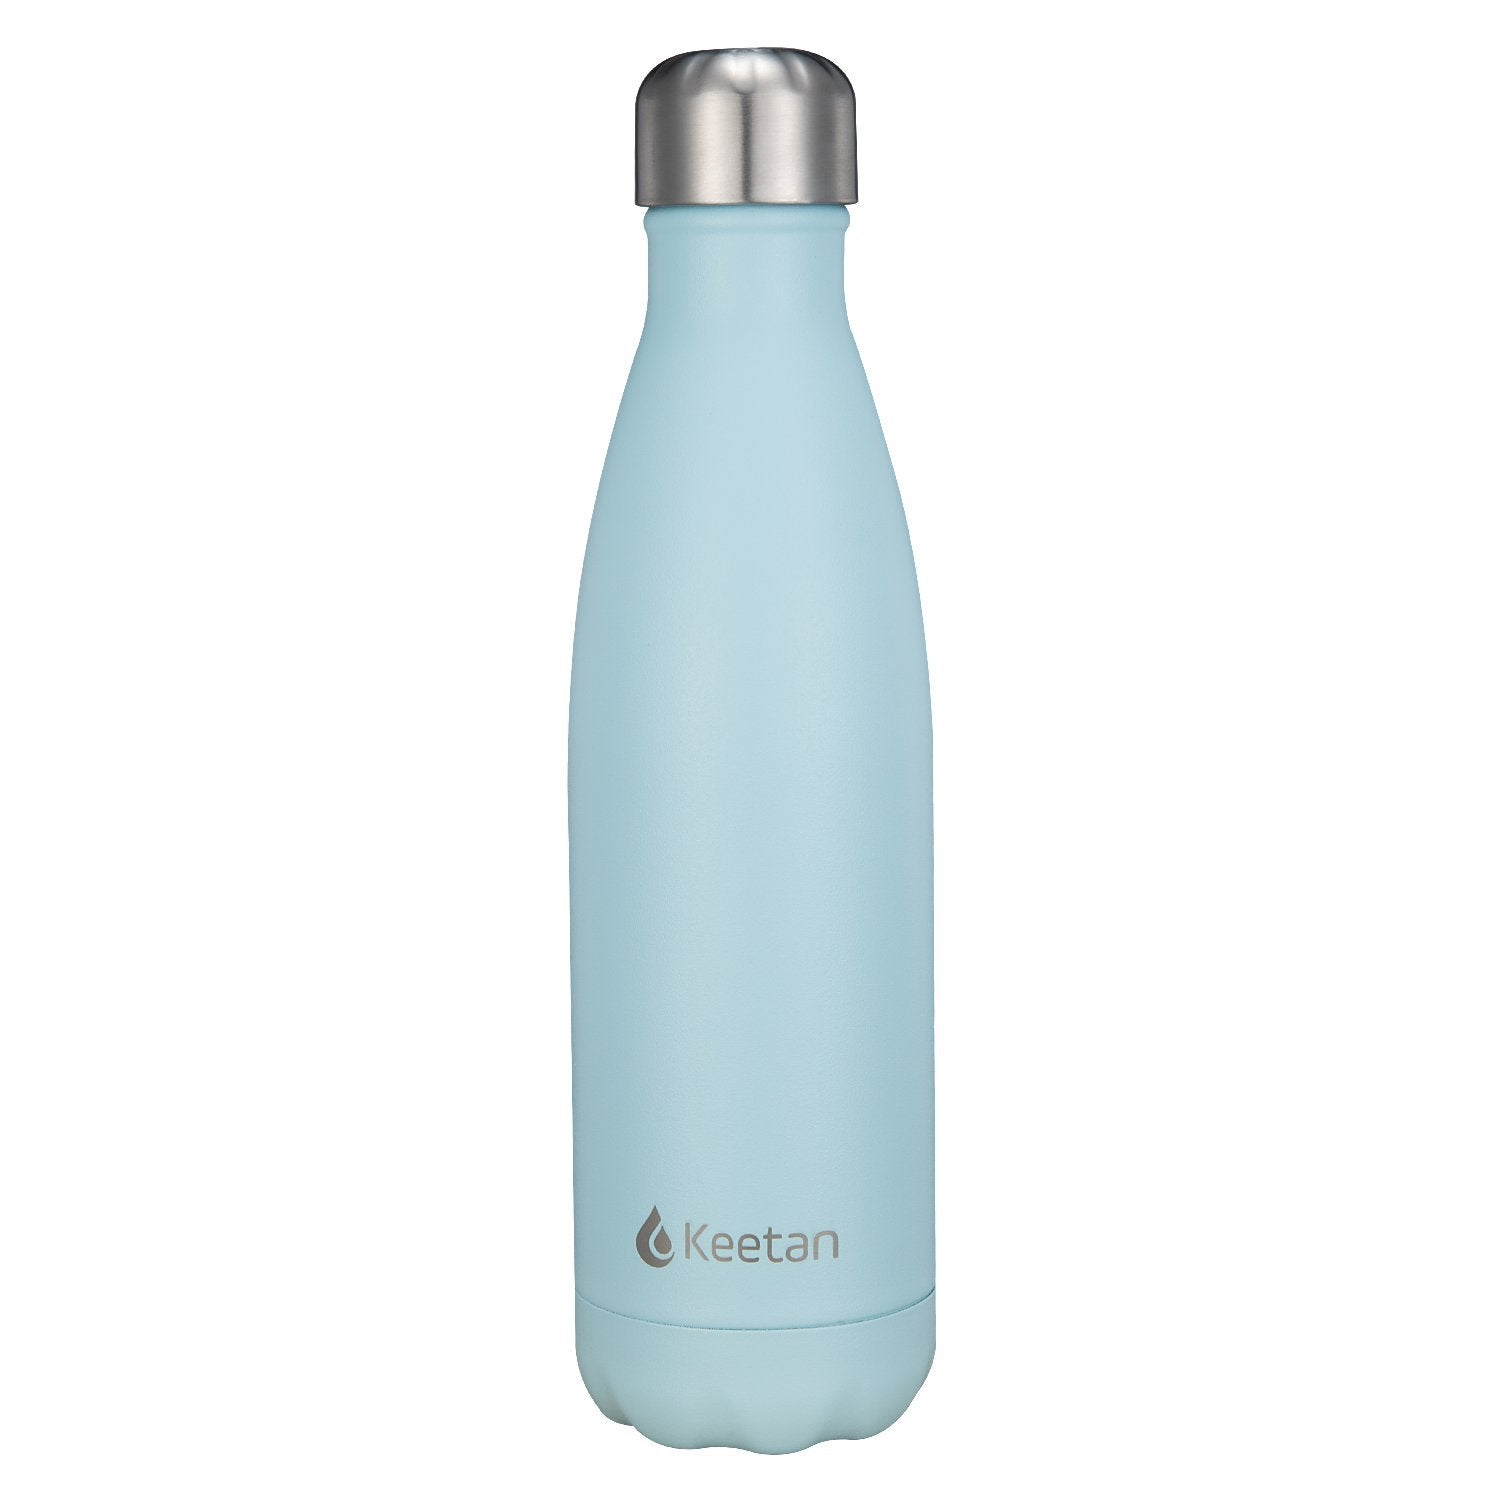 Keetan AIR Max Water Bottle-Blue - Customized